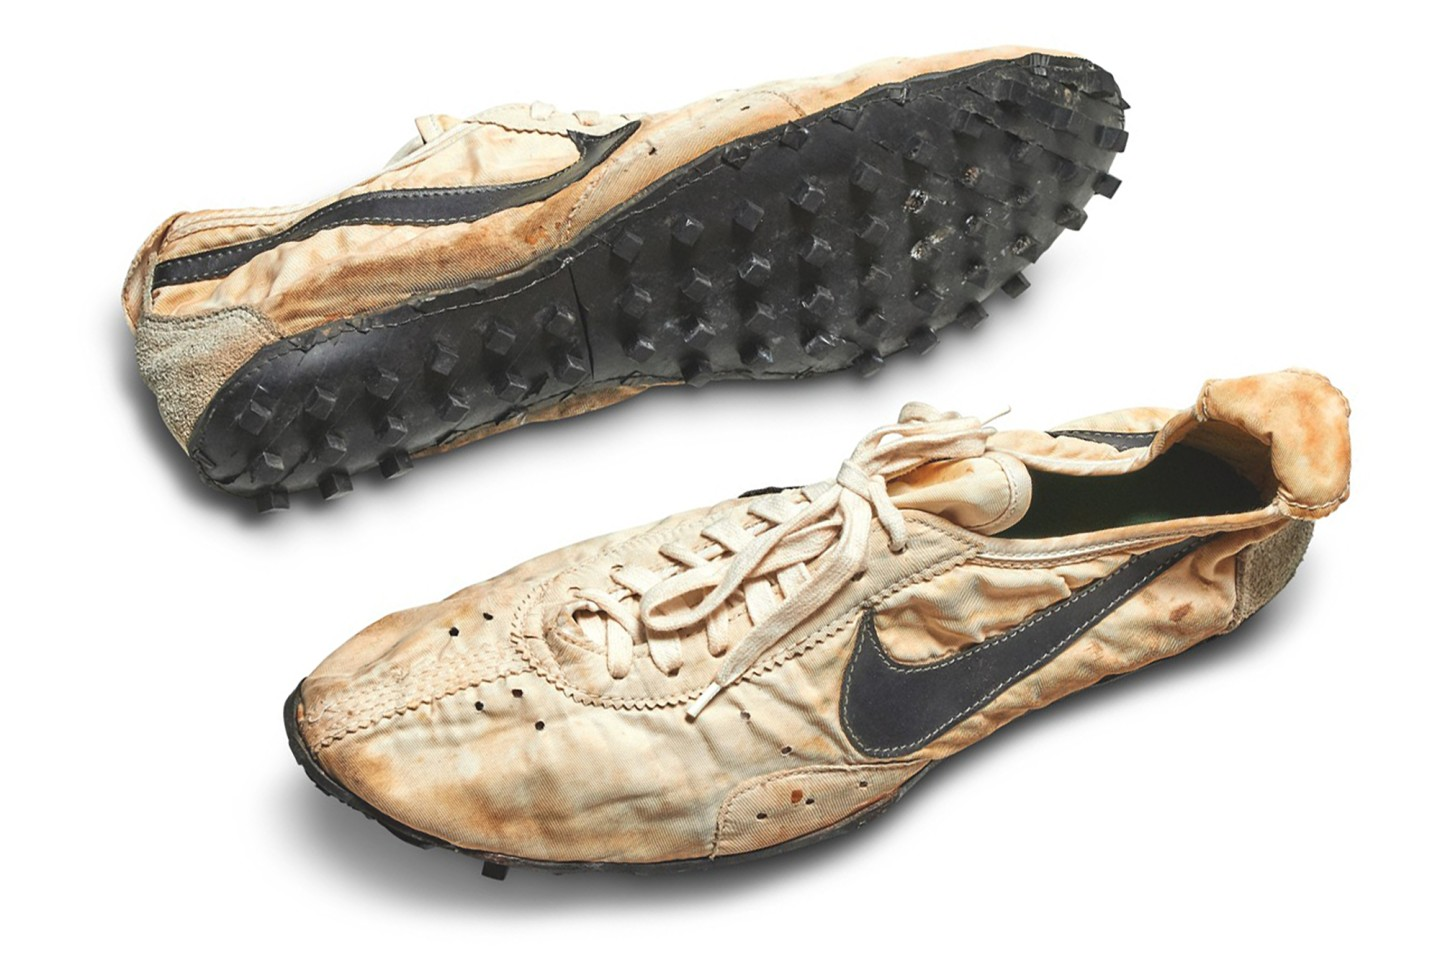 """One of the most significant artefacts in the history of both the Nike brand and sporting culture, this is the Nike """"Moon Shoe"""". It is one of only a handful of pairs known to exist, of the original handmade running shoe designed by Nike co-founder and Oregon University track coach Bill Bowerman. As the famous story goes, Bowerman was first inspired to create the innovative waffle sole traction pattern found on the brand's early running shoes by tinkering with his wife's waffle iron, pouring rubber into the mold to create the first prototype of the sole. The finished design of the traction pattern created better grip and cushion than most running shoes of the time, and the waffle sole was Nike's first major innovation as a brand. The shoes sold for a world record $437,500 in 2019."""